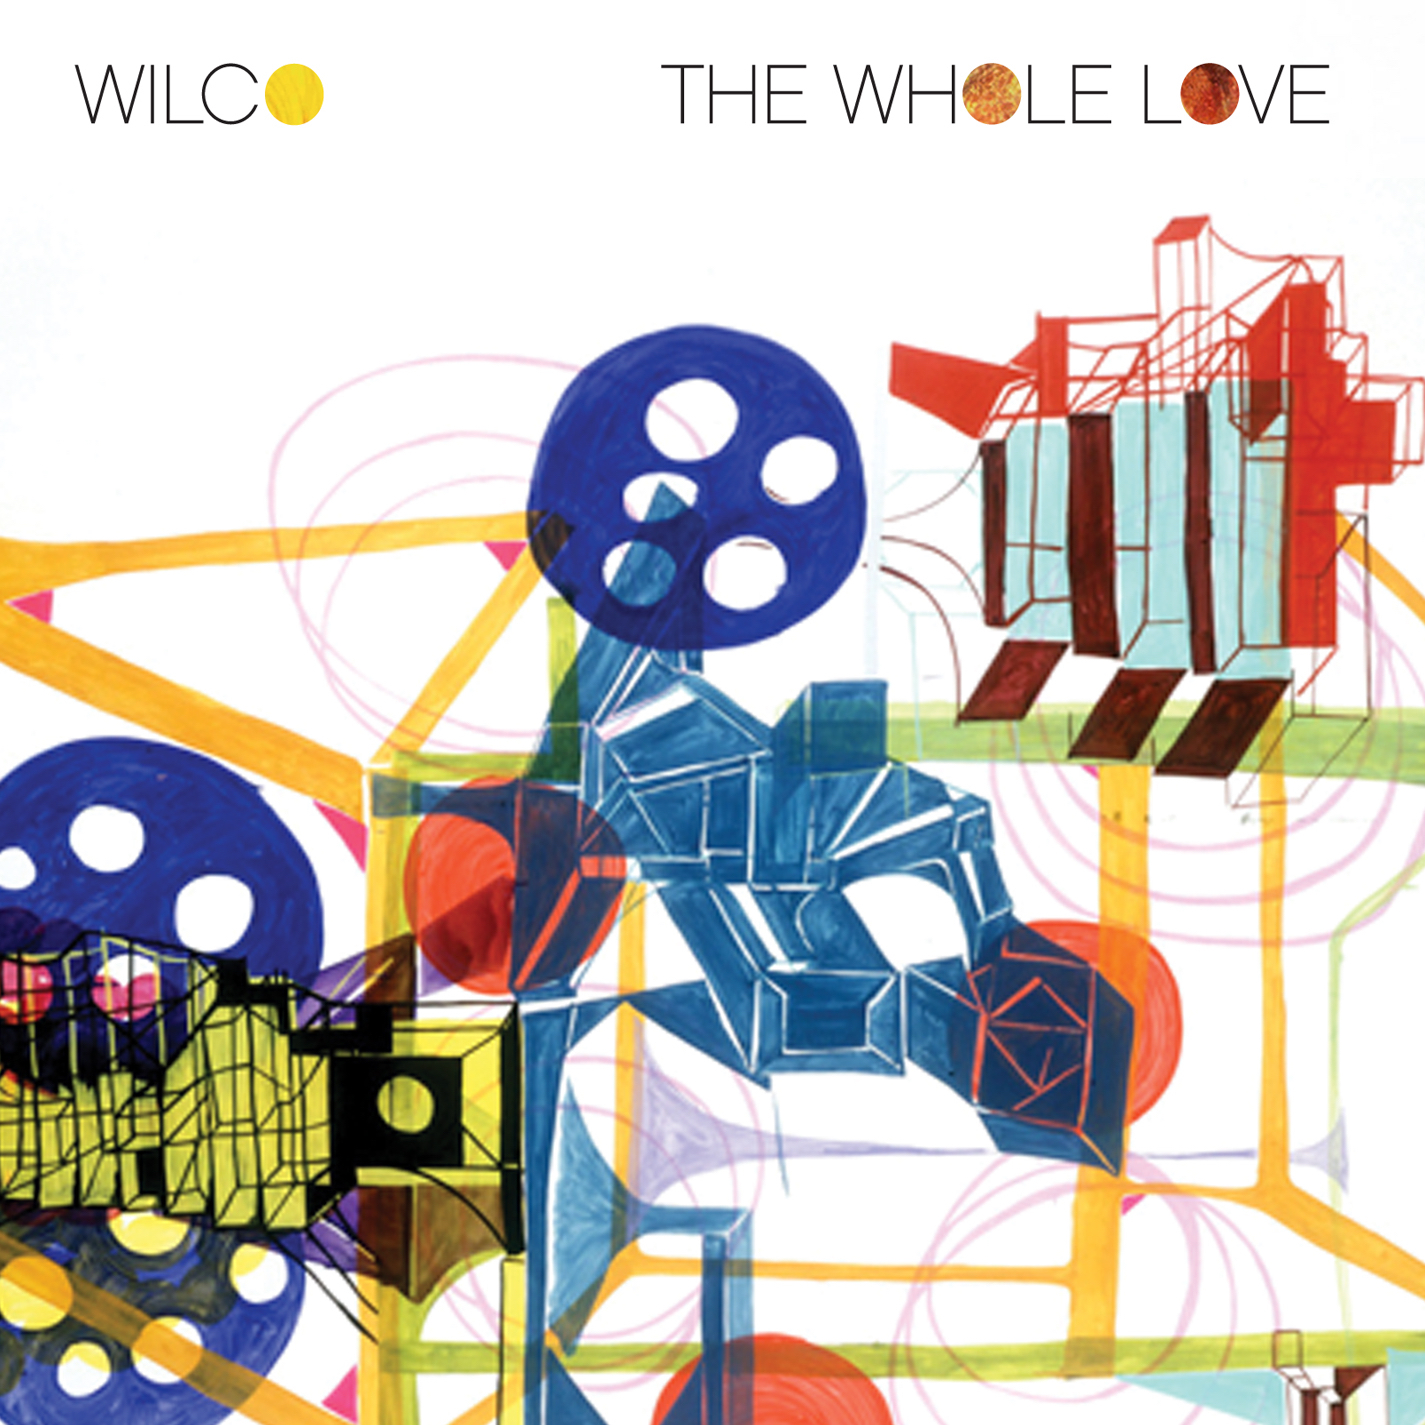 Wilco, The Whole Love